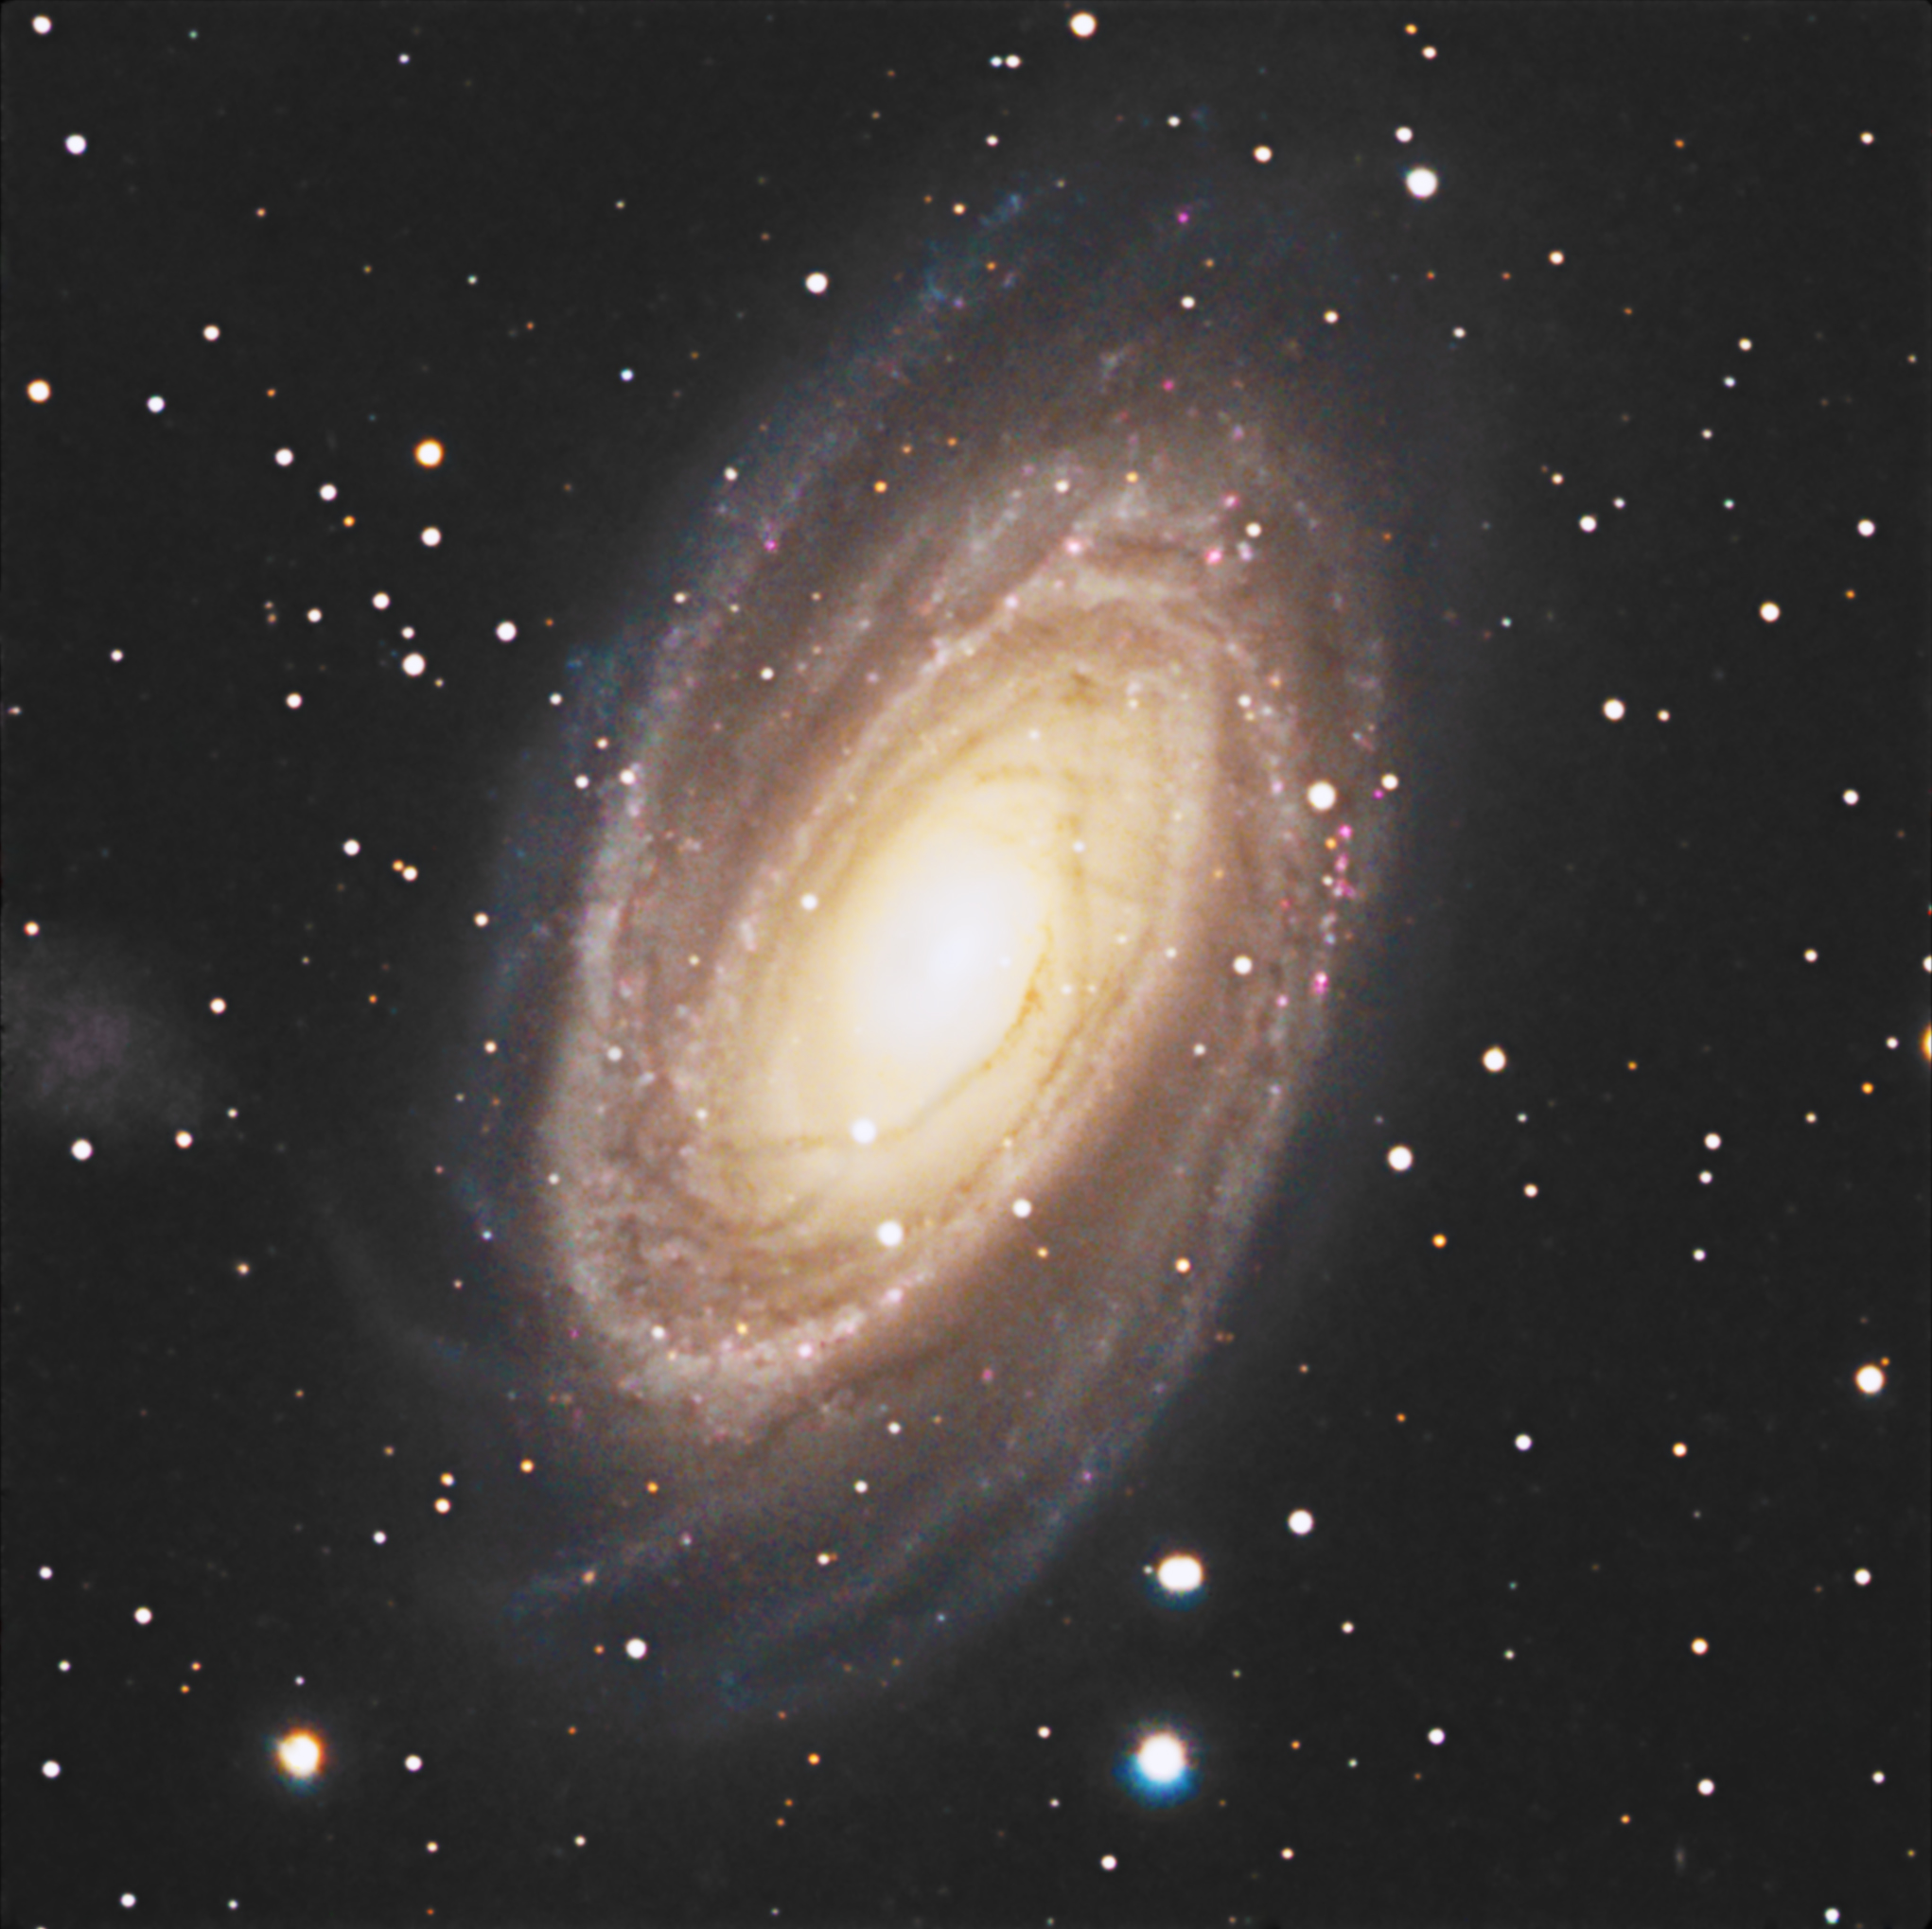 Messier 81 - Bode's Galaxy